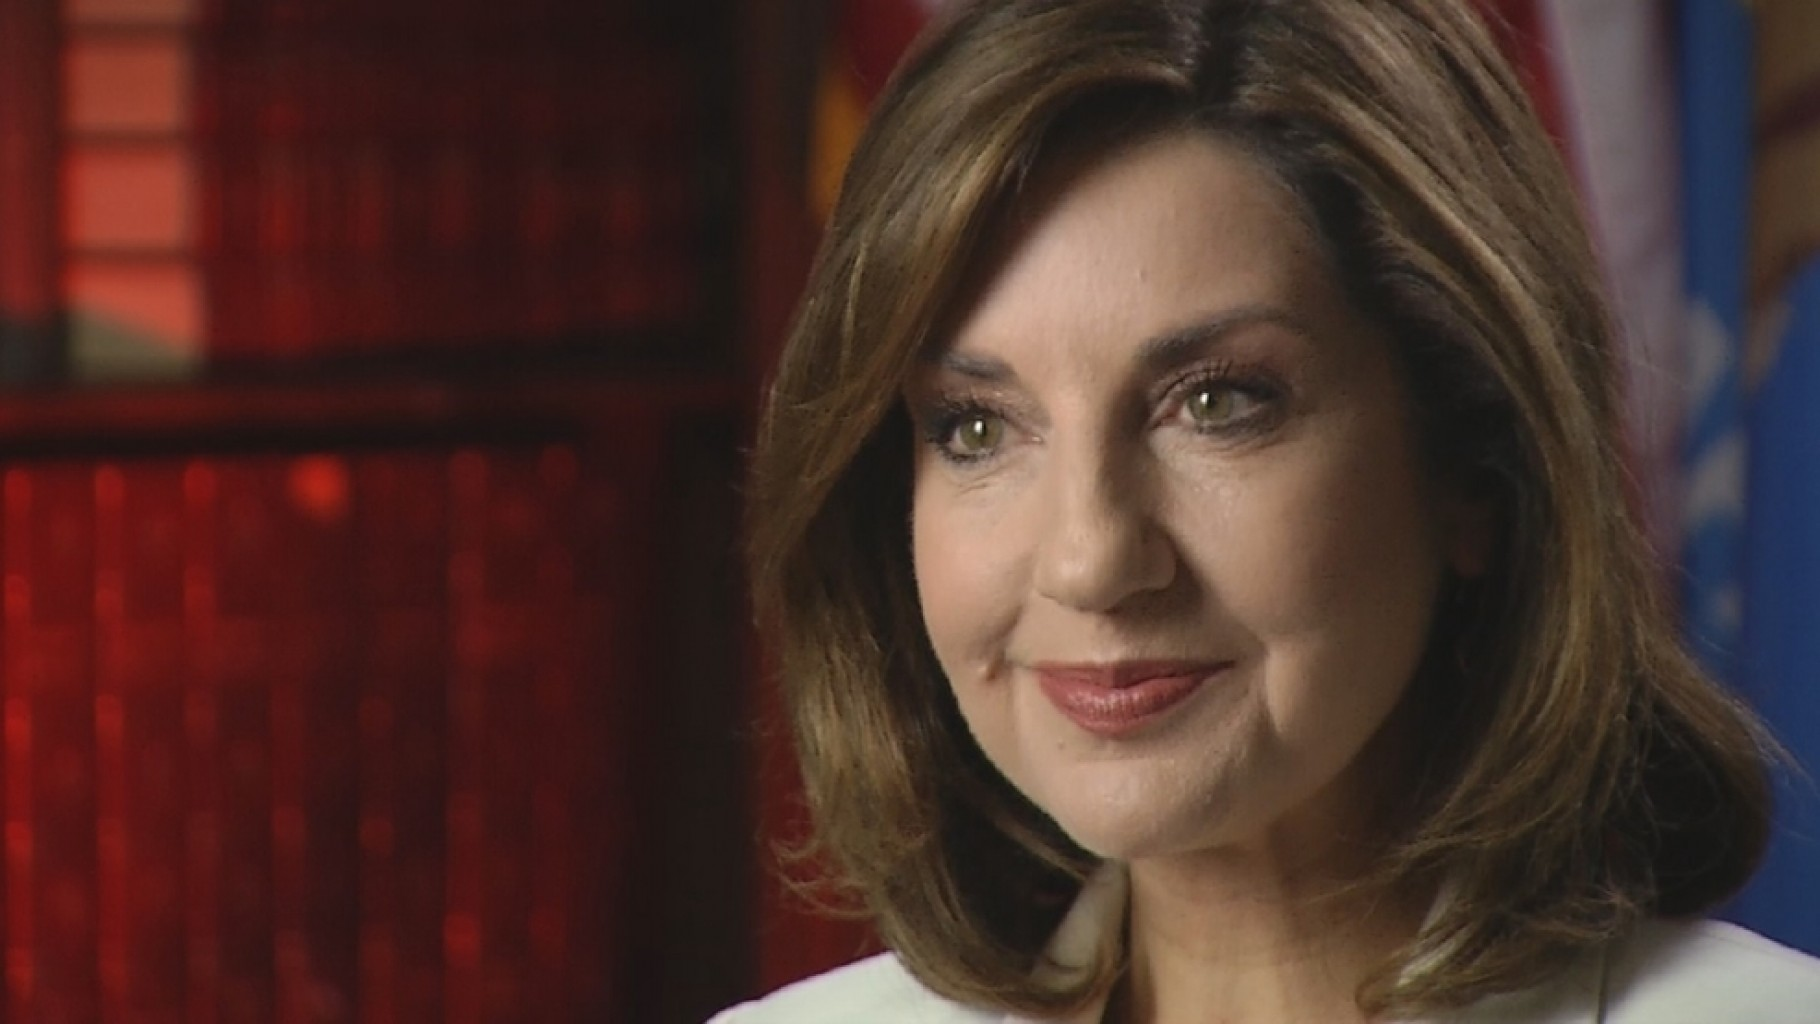 Hofmeister hails court decision clearing way for Teacher pay raise